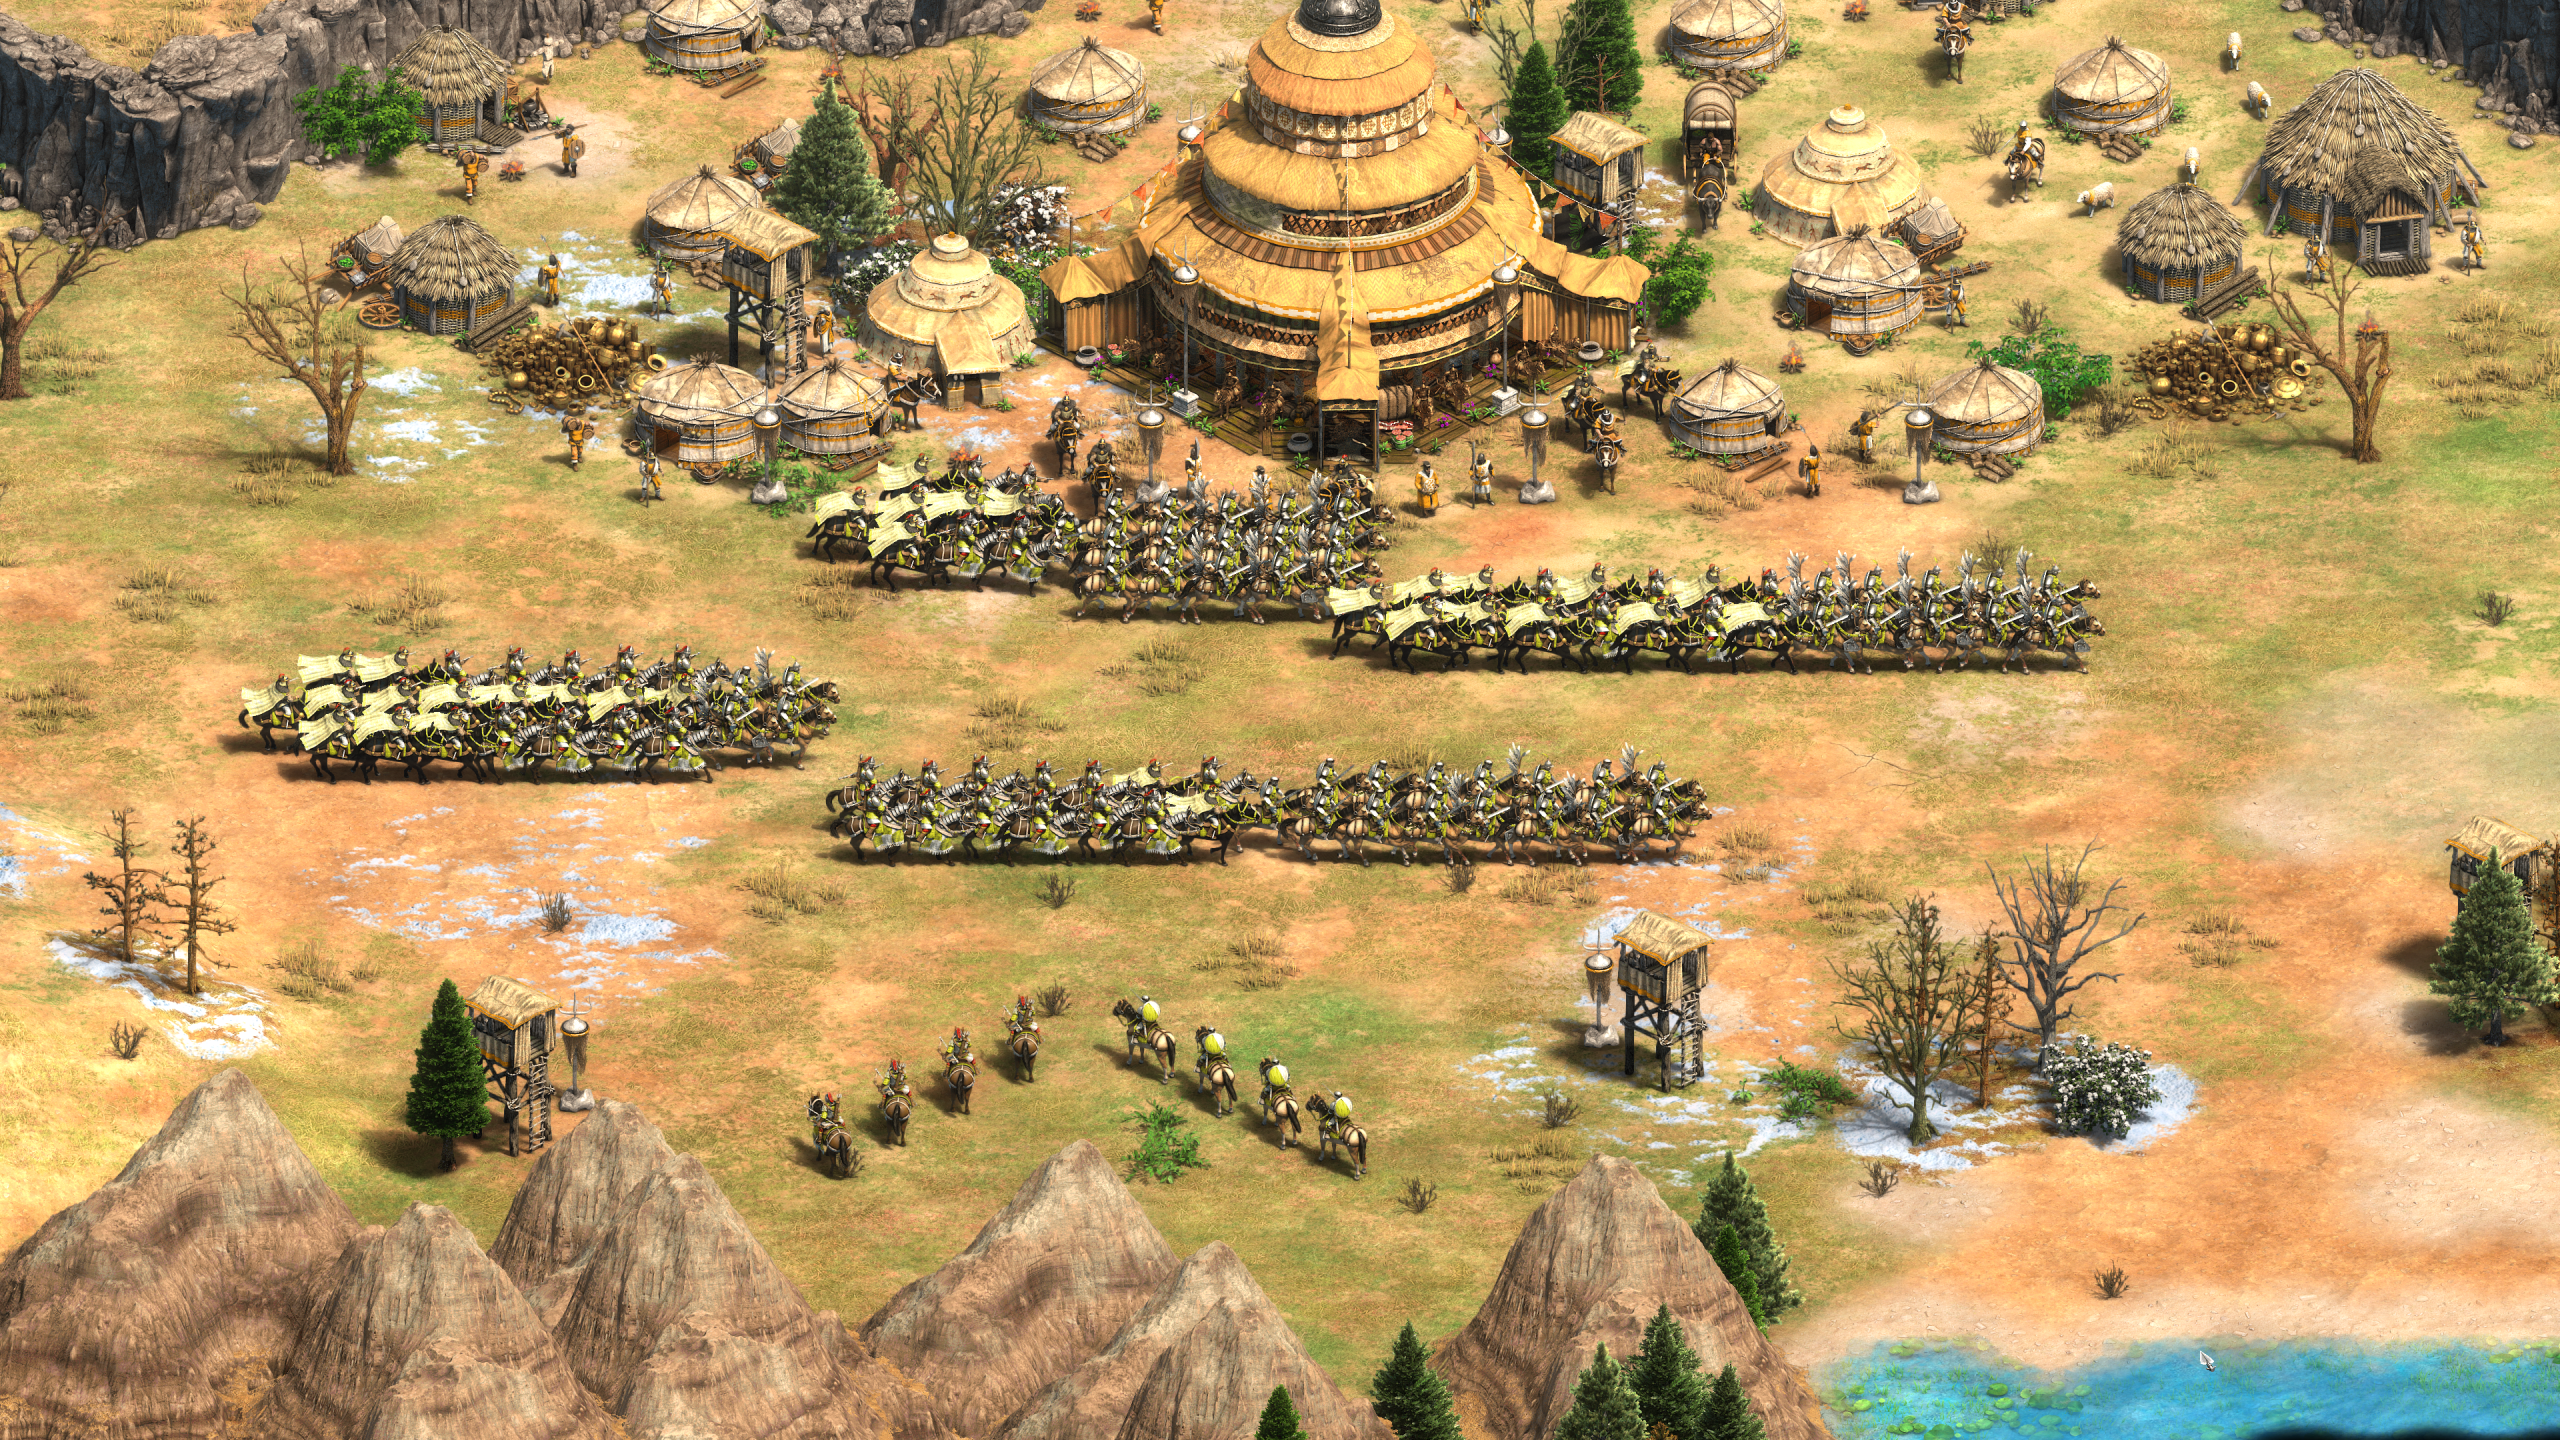 Mongols in Age of Empires II: Definitive Edition